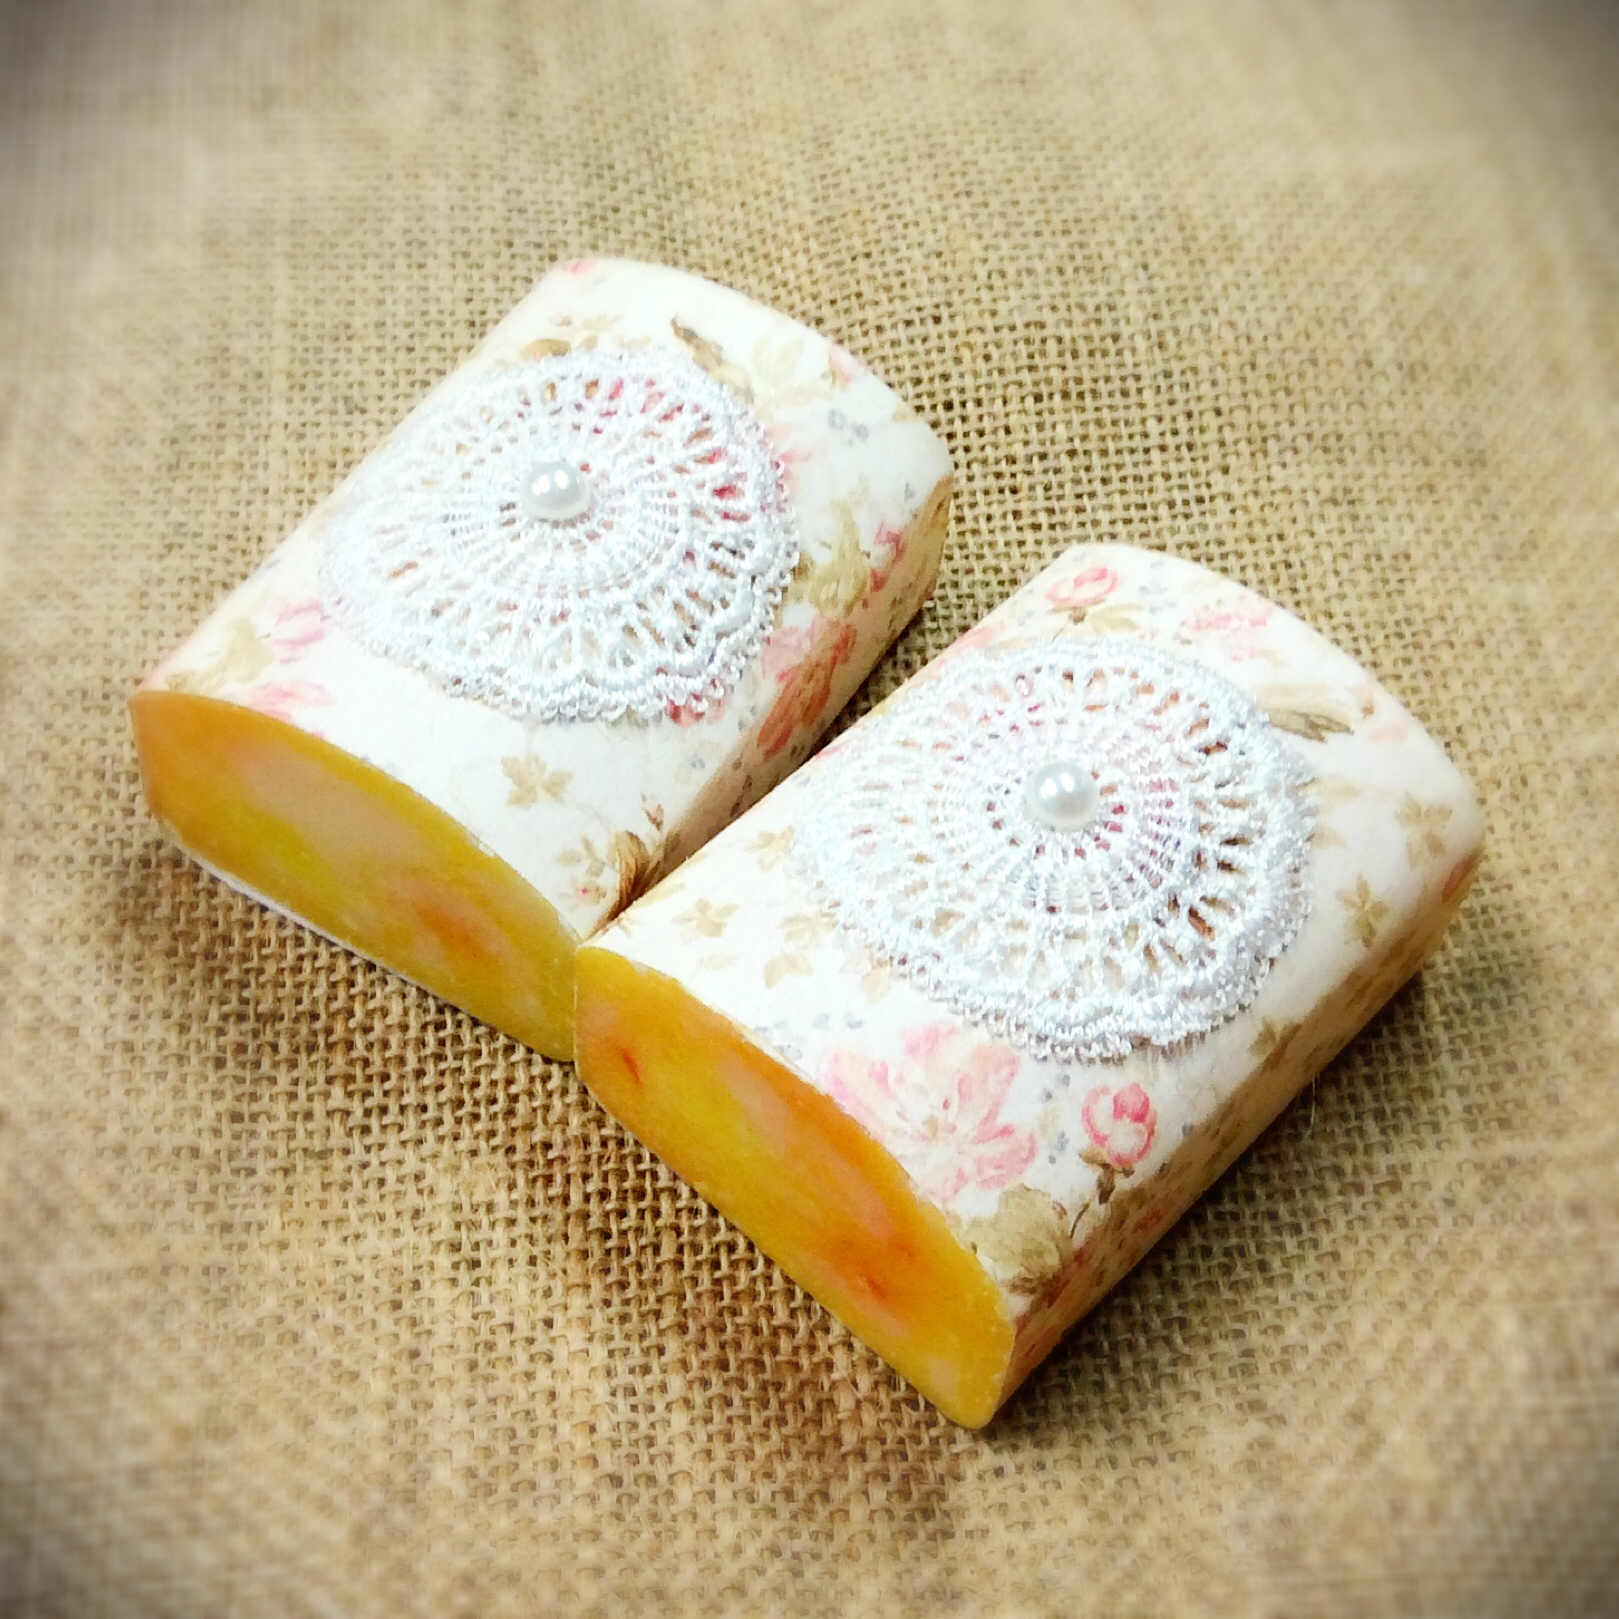 wedding-or-event-favor-of-1-large-goats-milk-soap-with-floral-print-paper-and-doily-on-top.jpg